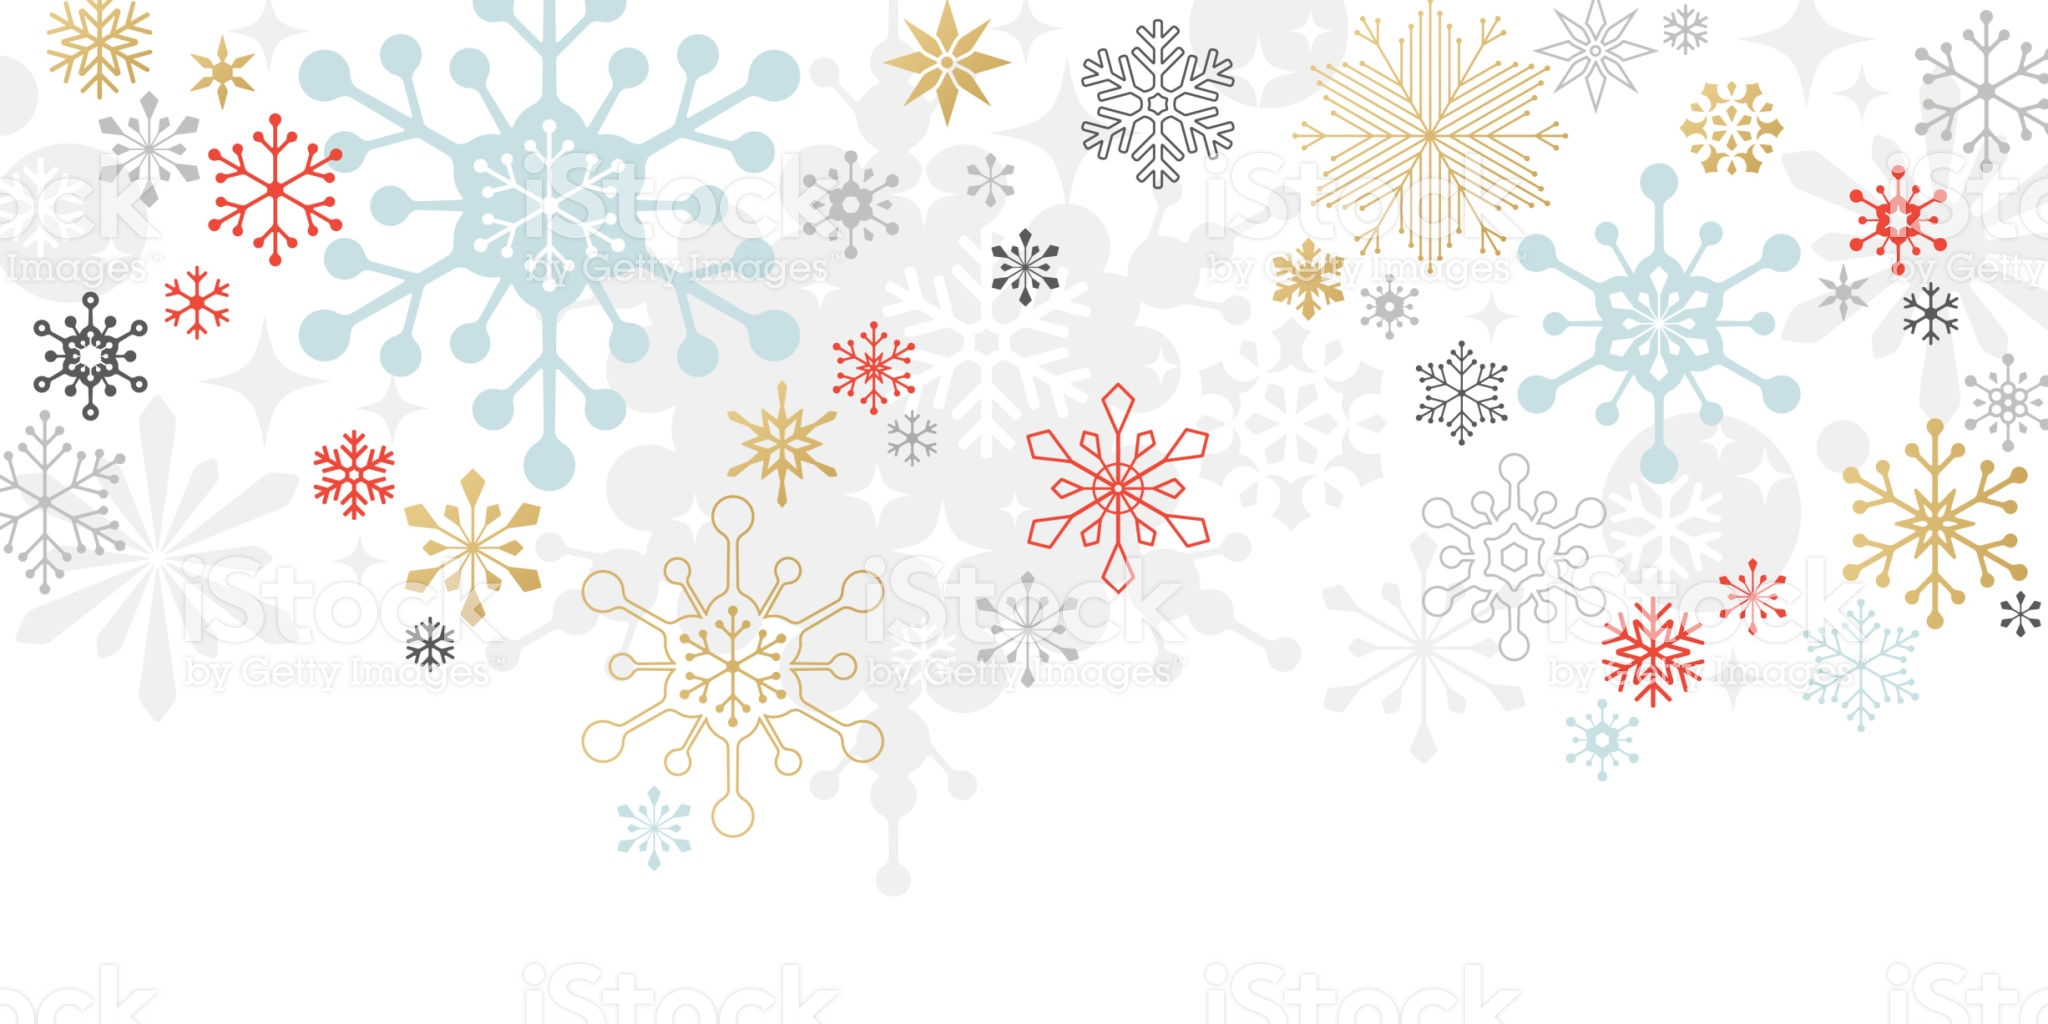 Graphic snowflakes on white background. Christmas, holidaycard.